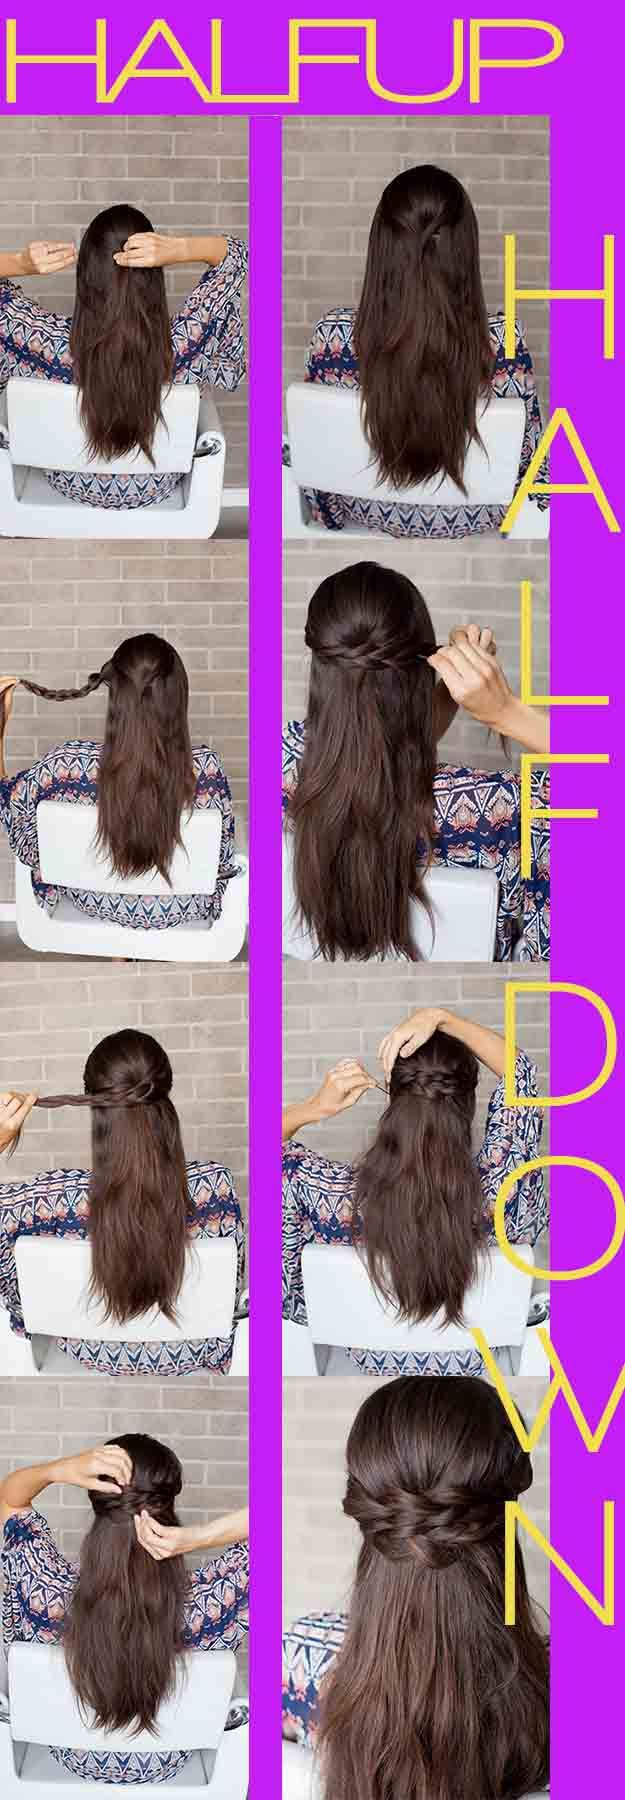 25 Easy Half Up Half Down Hairstyle Tutorials For Prom The Goddess Prom Hair Down Wedding Hairstyles Medium Length Cute Hairstyles Shoulder Length